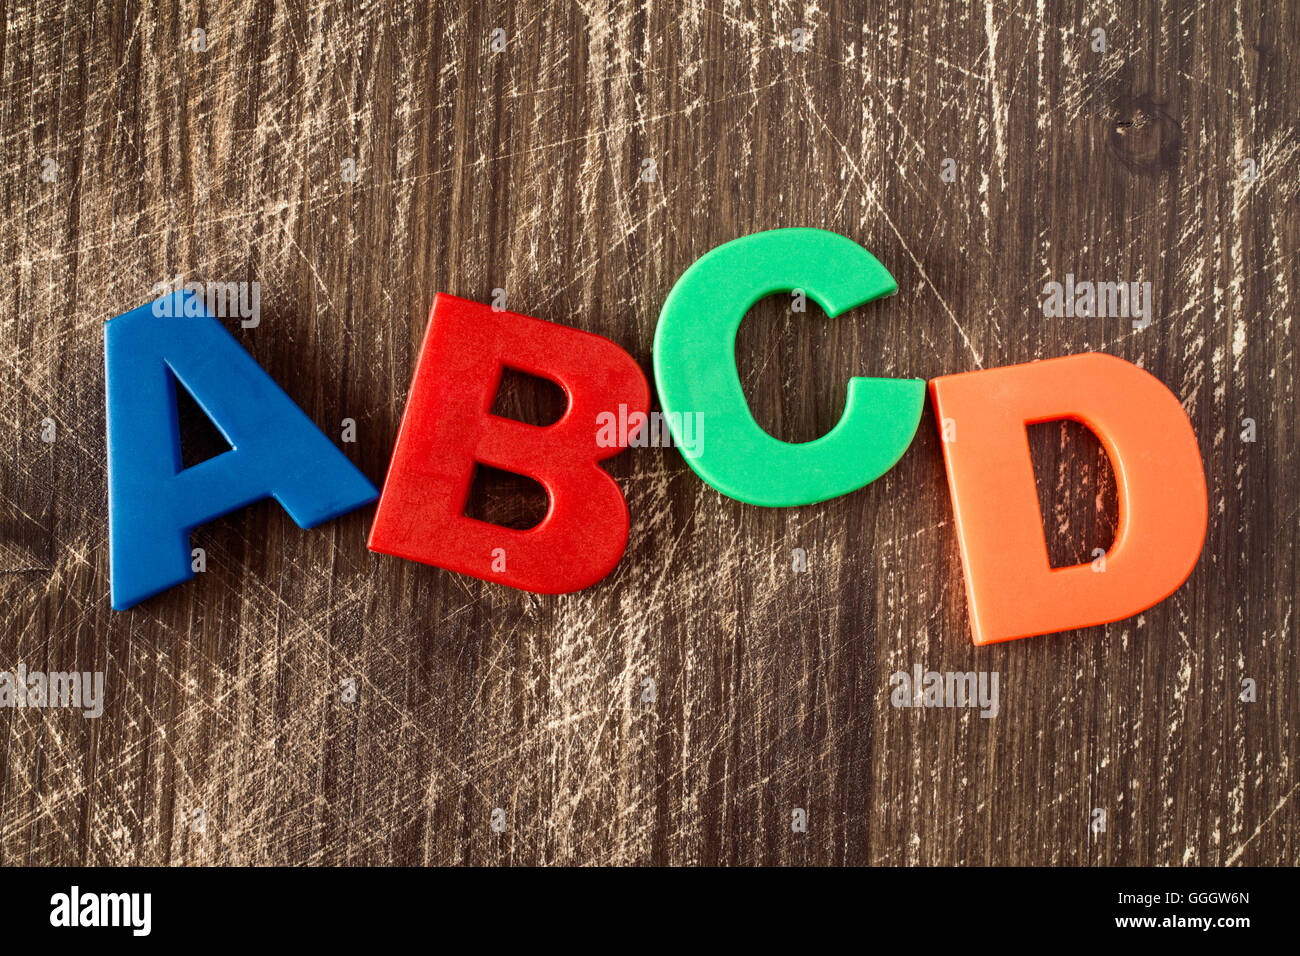 Geometric Wallpaper Hd Abcd Stock Photos Amp Abcd Stock Images Alamy